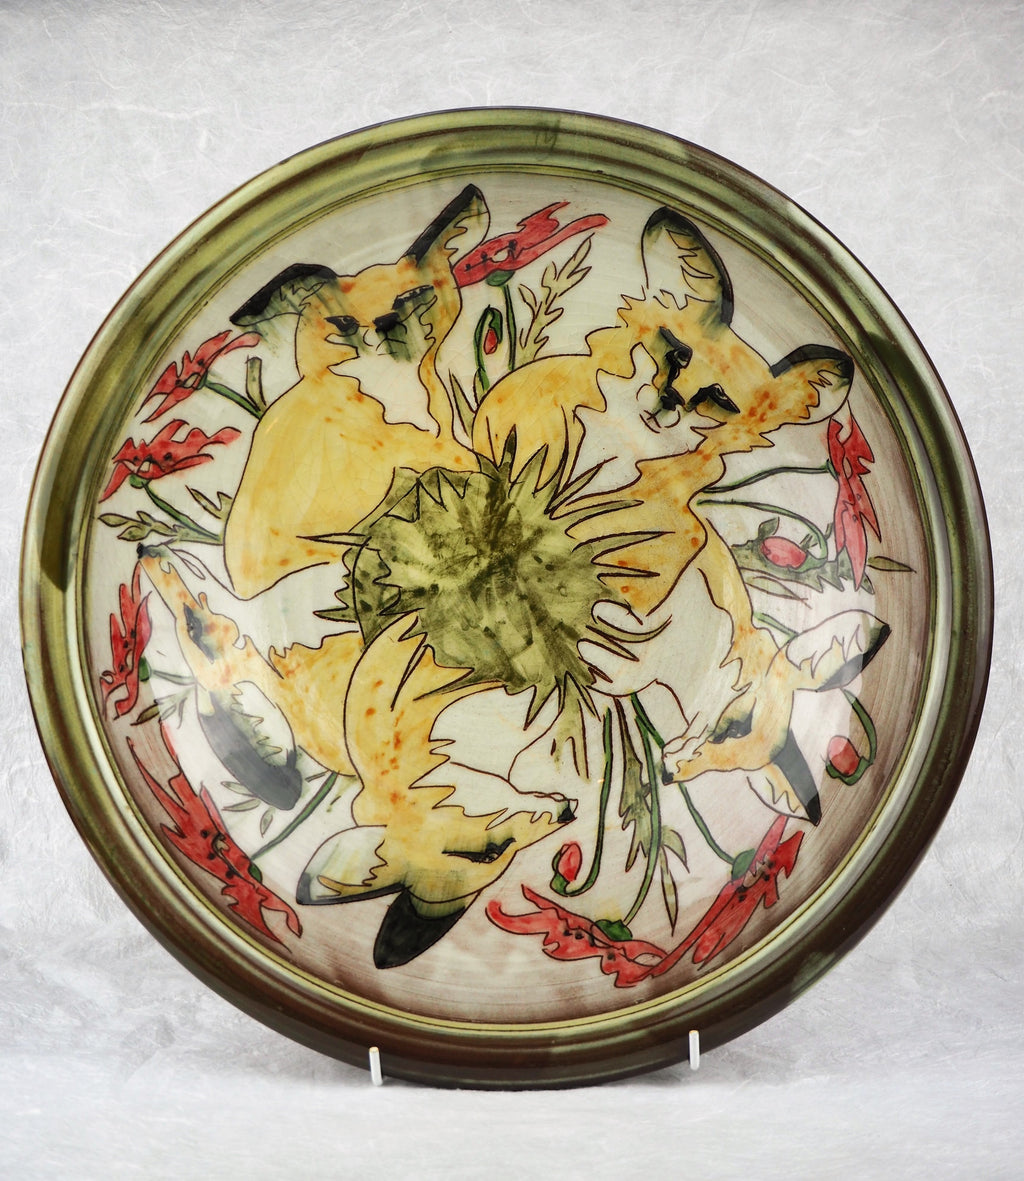 Hale, Jennie – Decorated Earthenware Dish